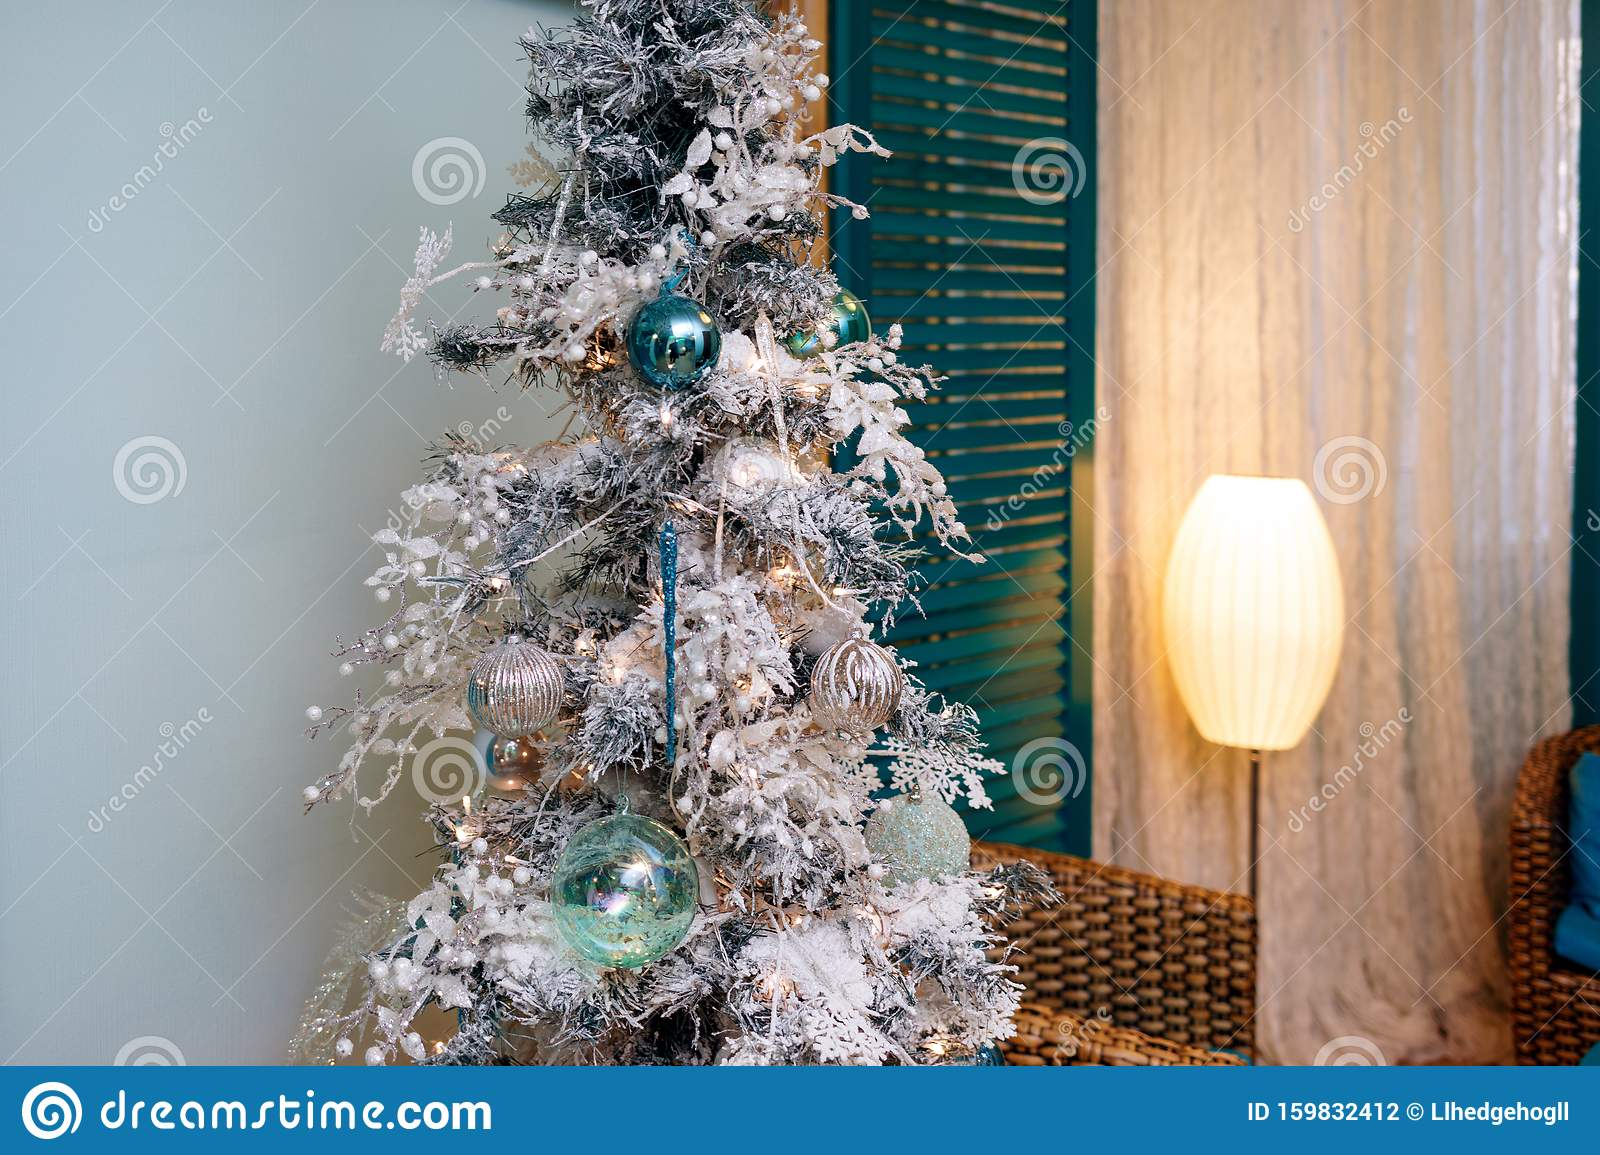 Christmas Tree With White Artificial Snow On Branches And Decorations Stock Photo Image Of Fairytale Holiday 159832412